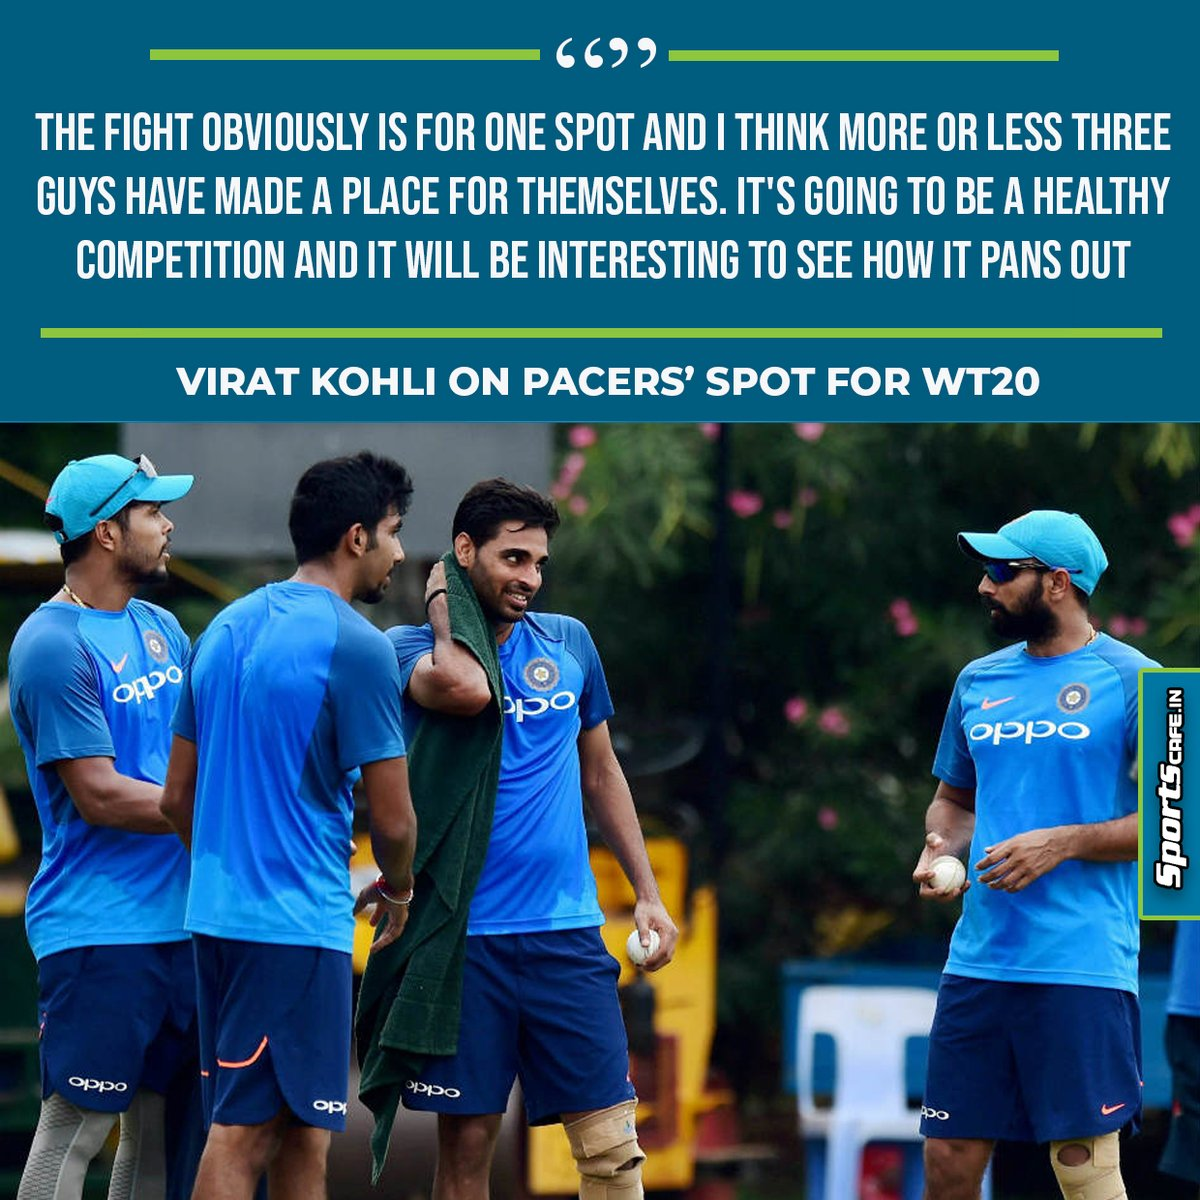 Kohli on Pacers